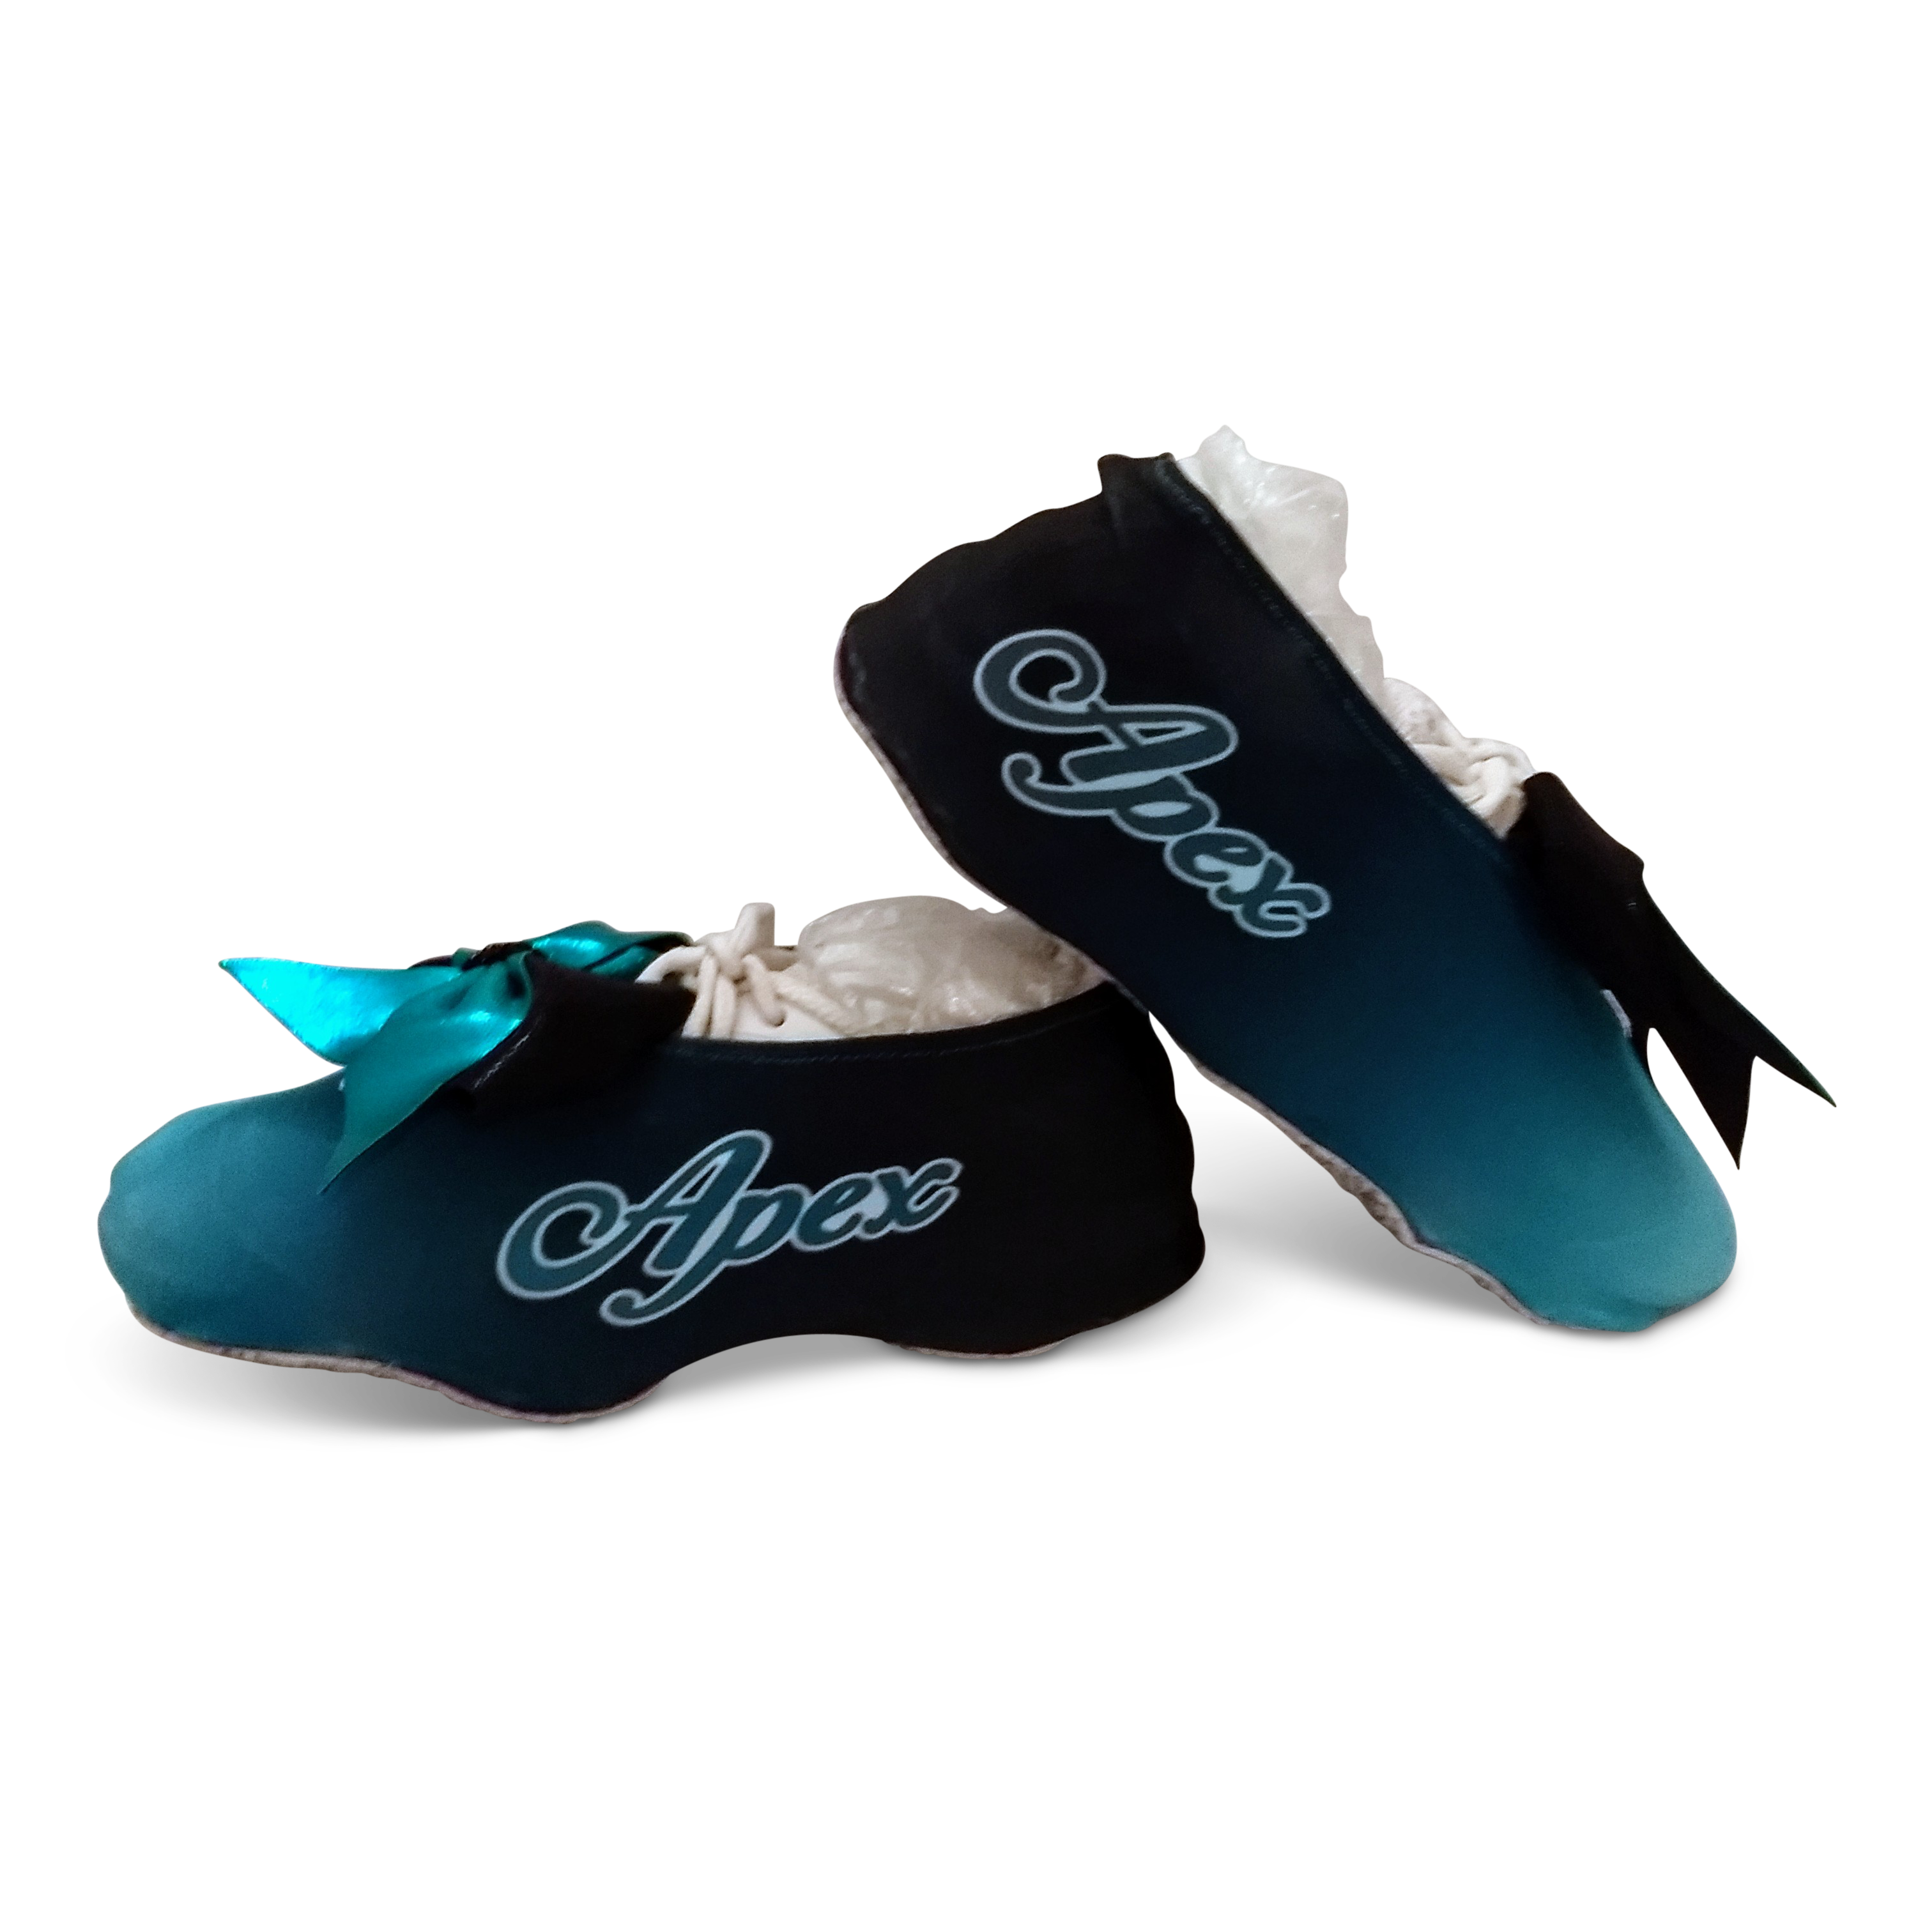 Apex - Cheer Shoe Covers CUS-APX